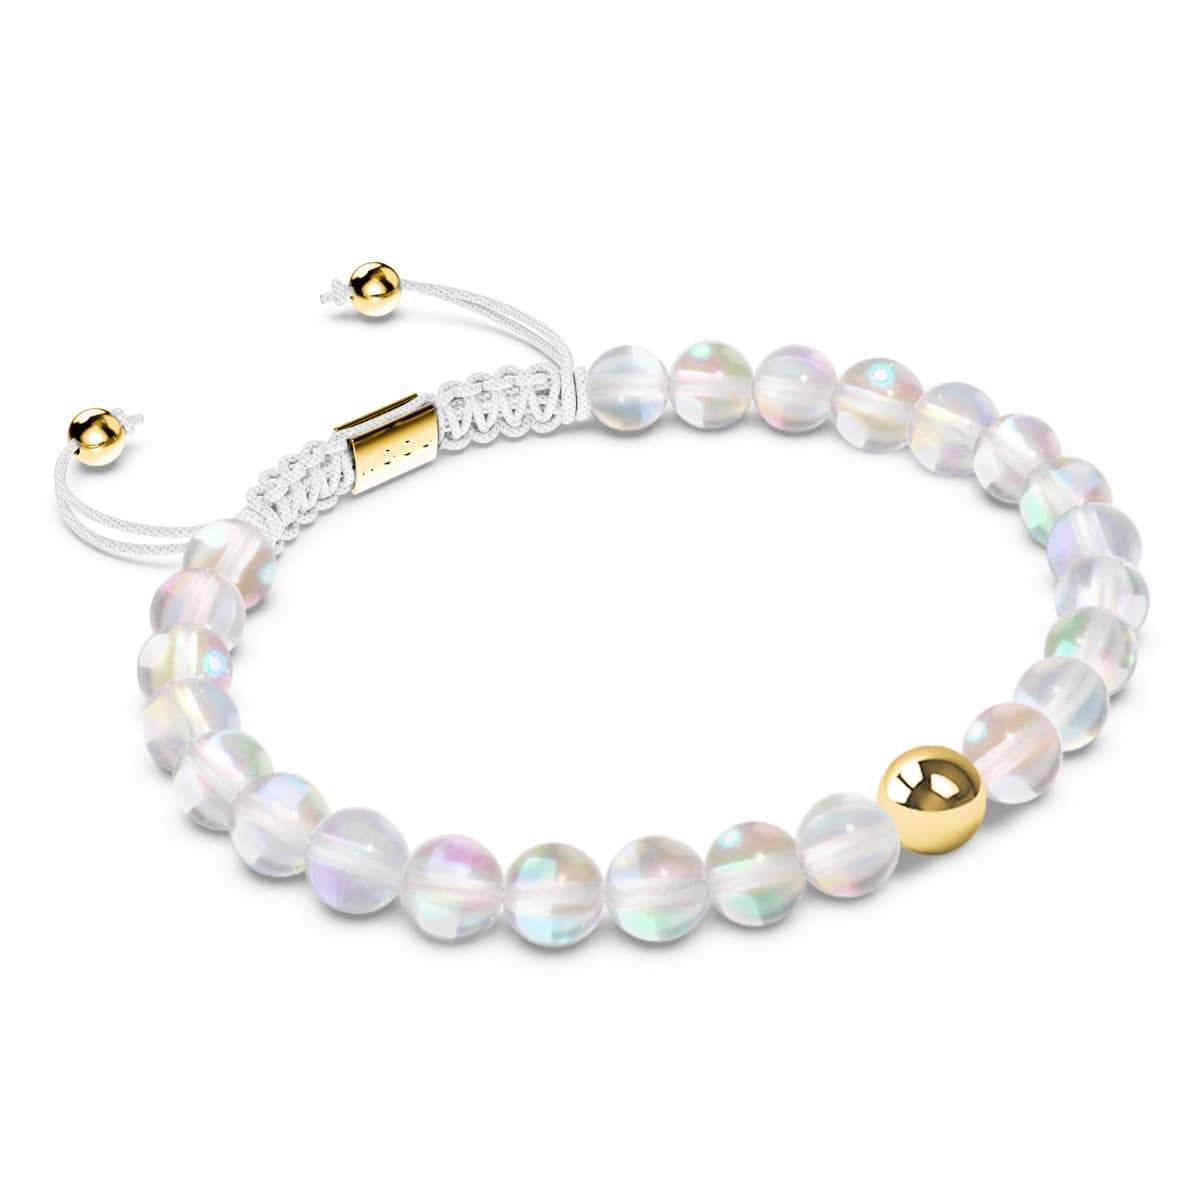 Unicorn White Crystal | Gold | Mermaid Glass Macrame Bead Bracelet